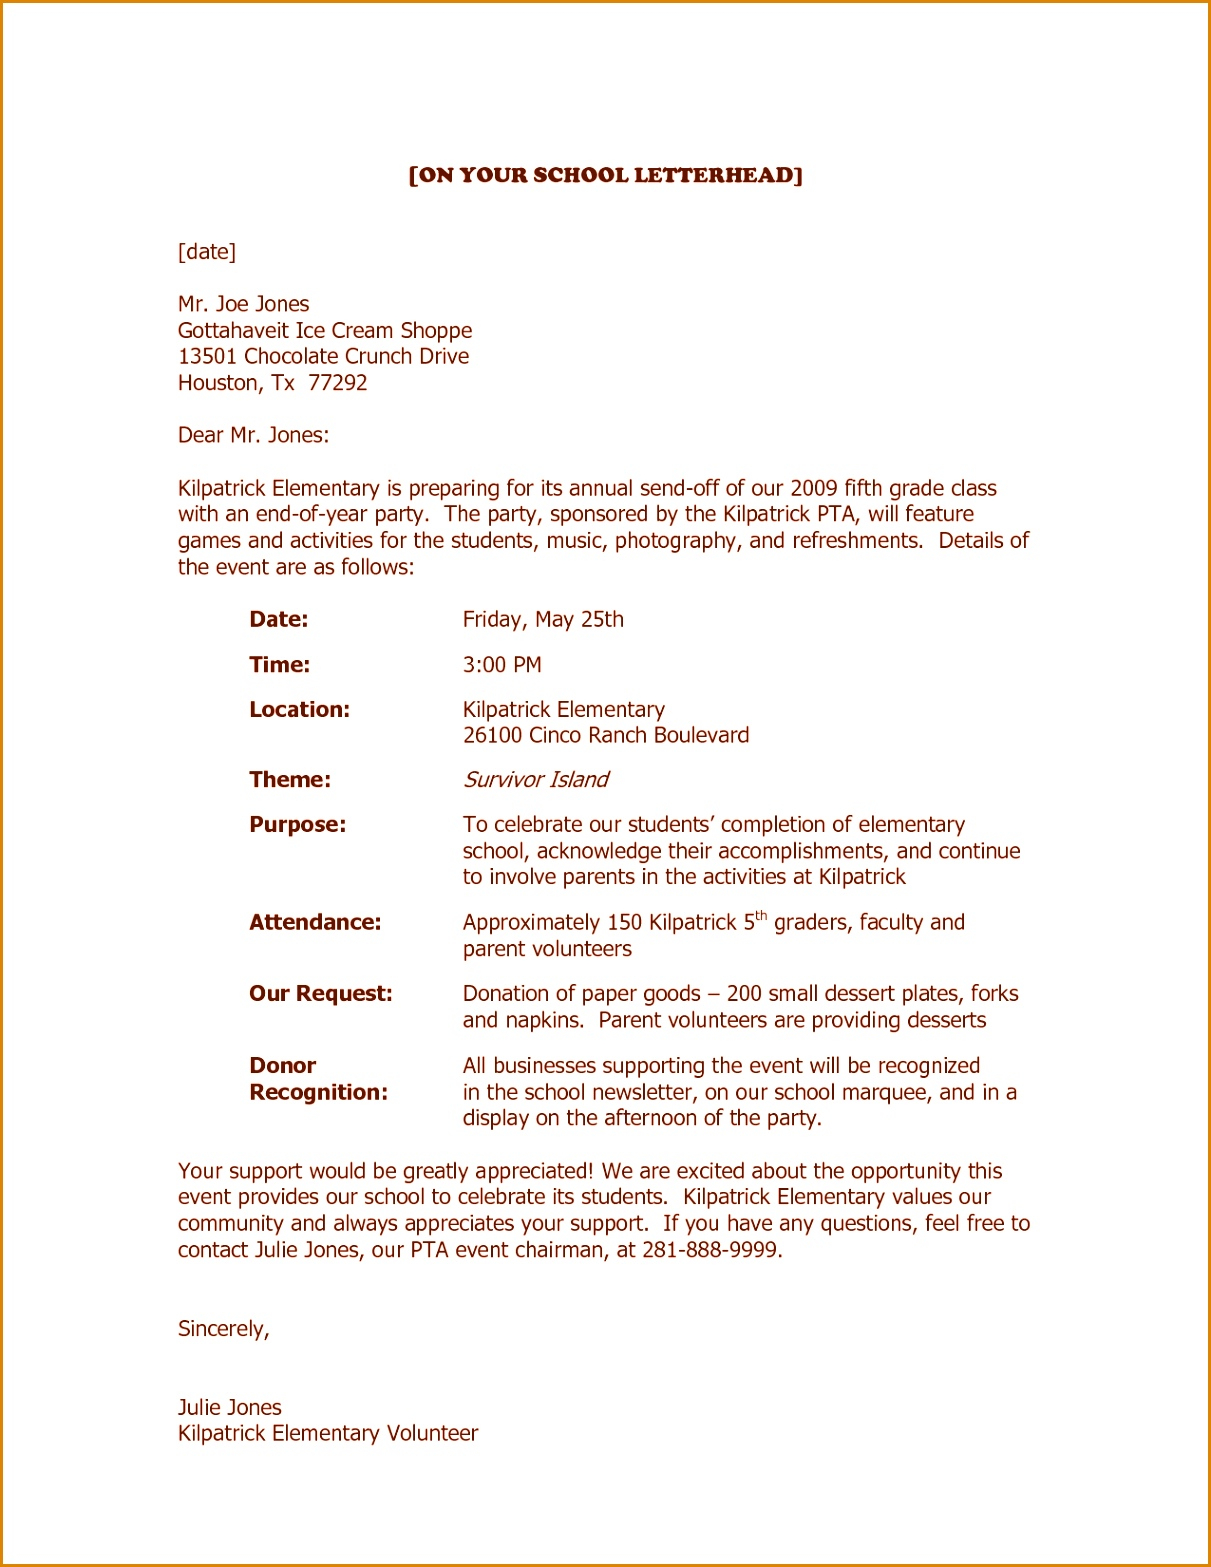 Fundraising Request for Donation Letter Template - 9 Letter for Donations From Businesses Besttemplates Besttemplates